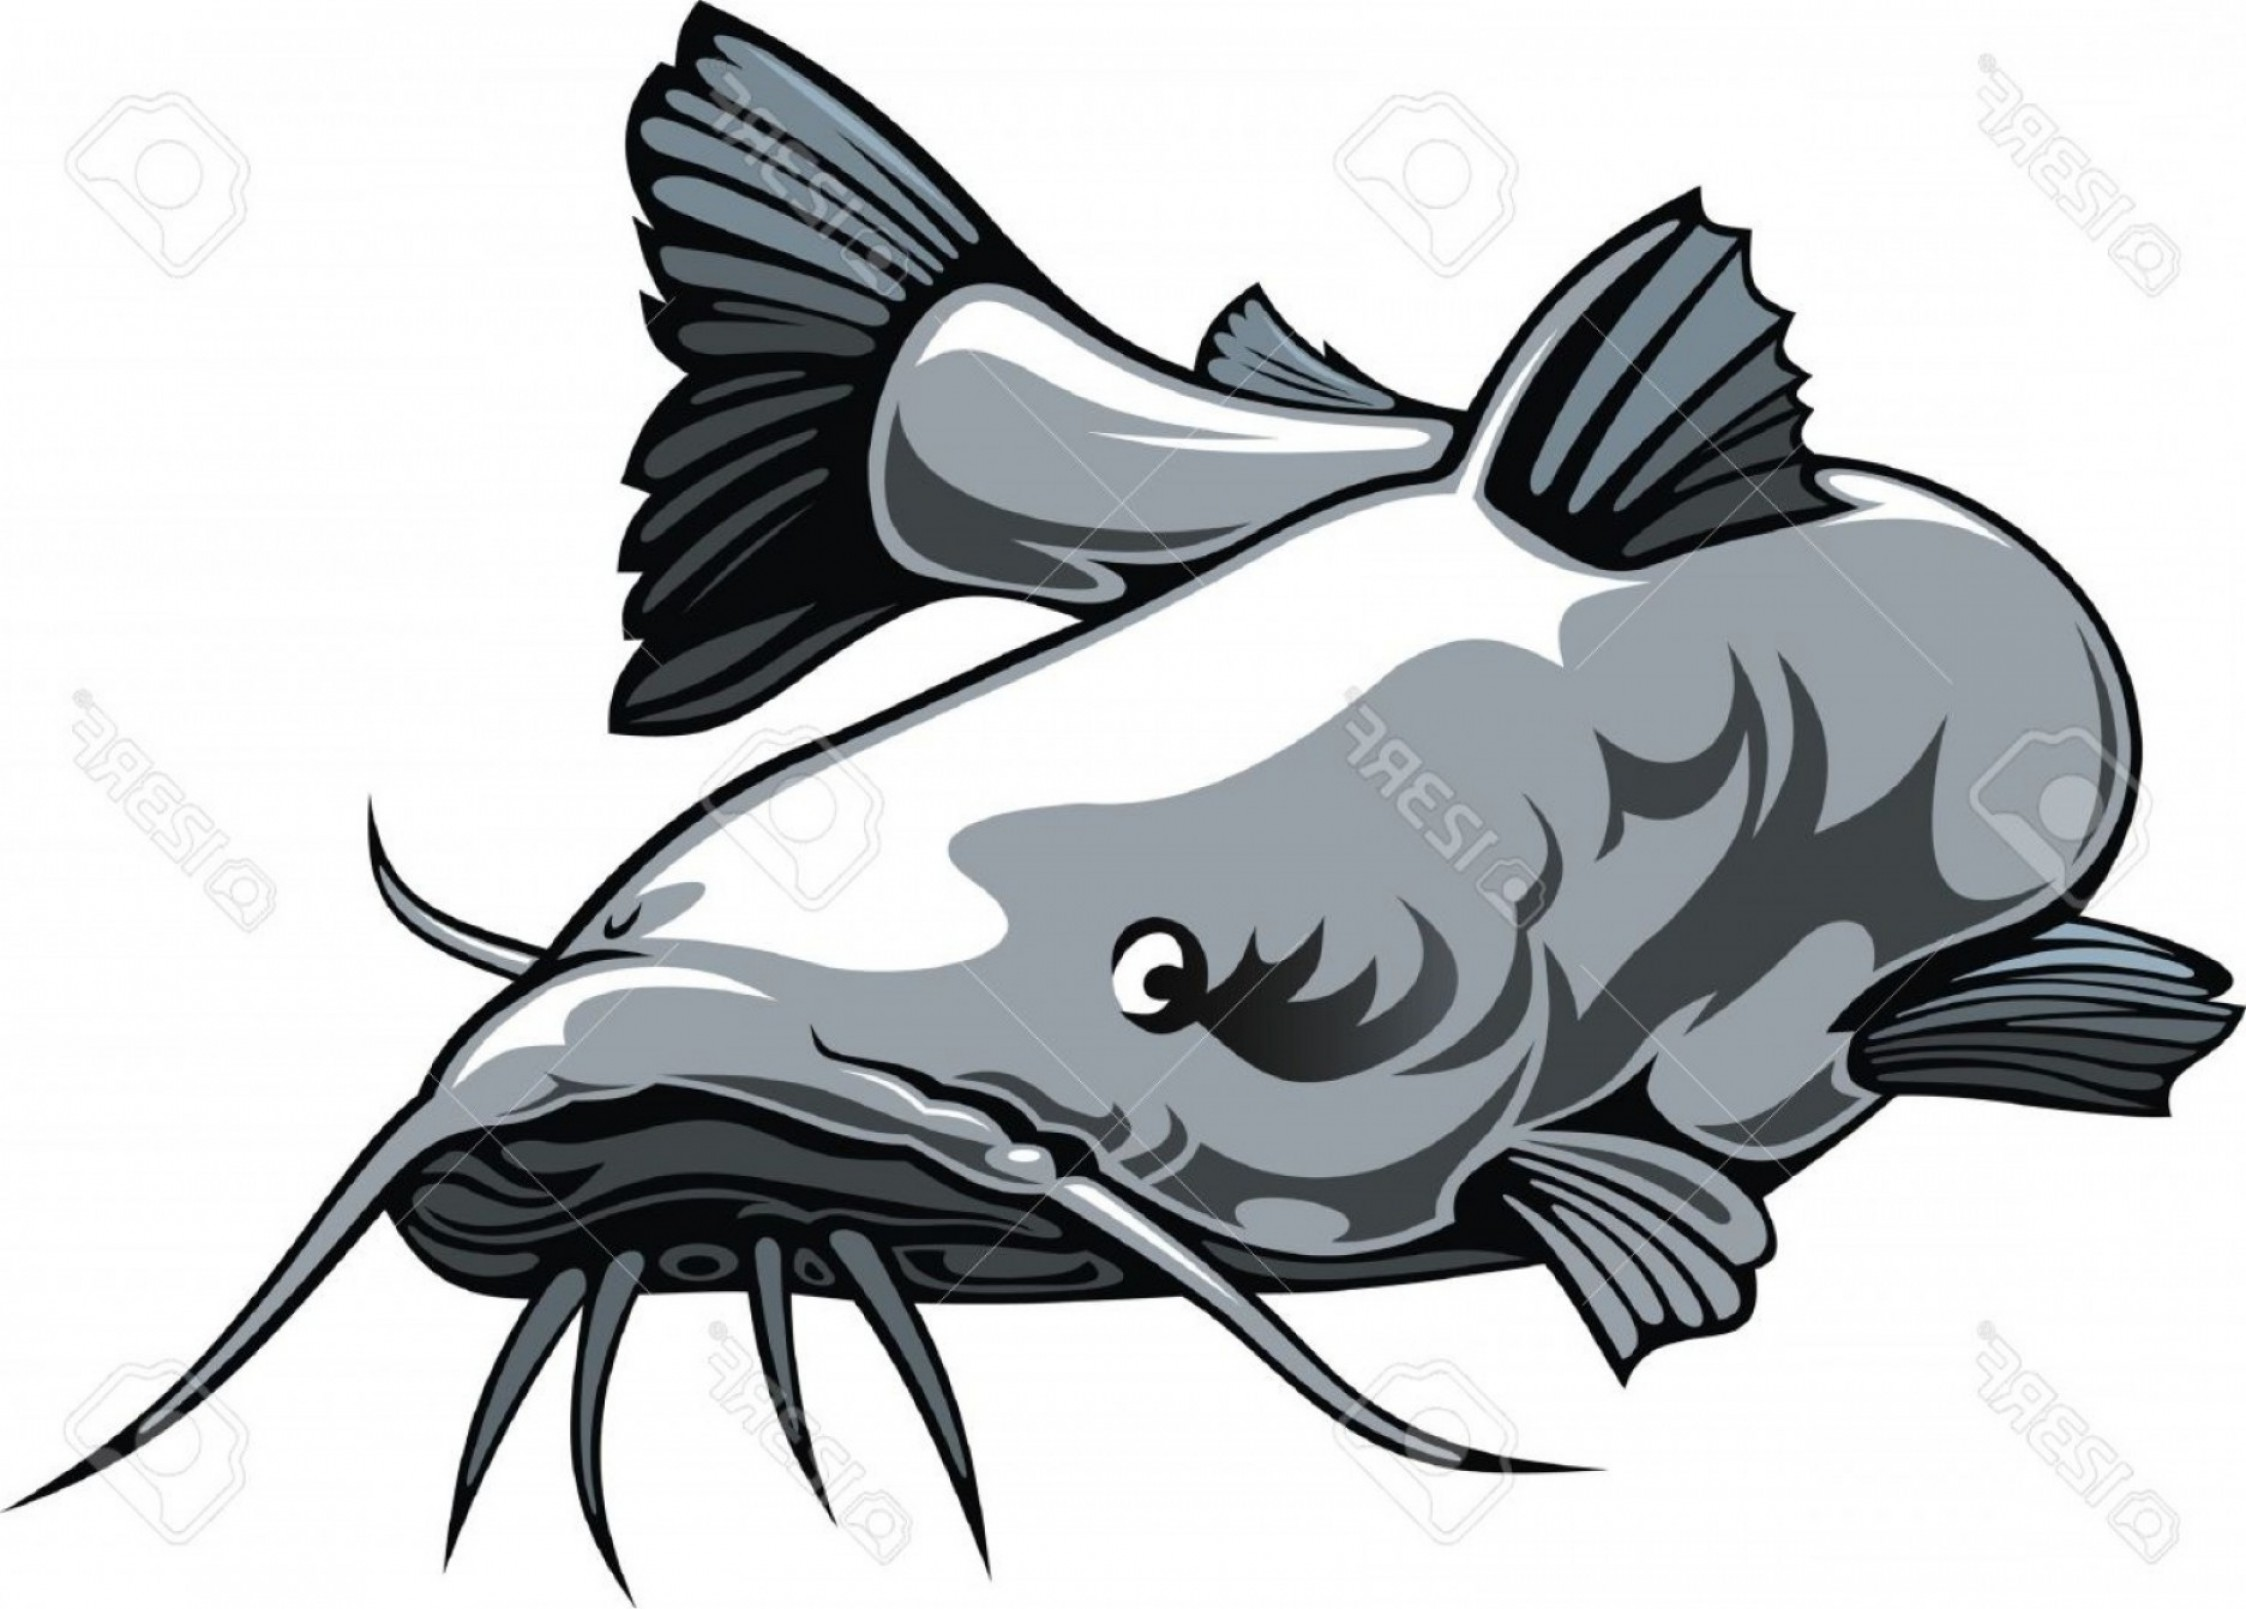 Catfish Vector Logo: Photonice Illustrated Catfish Isolated On White Background